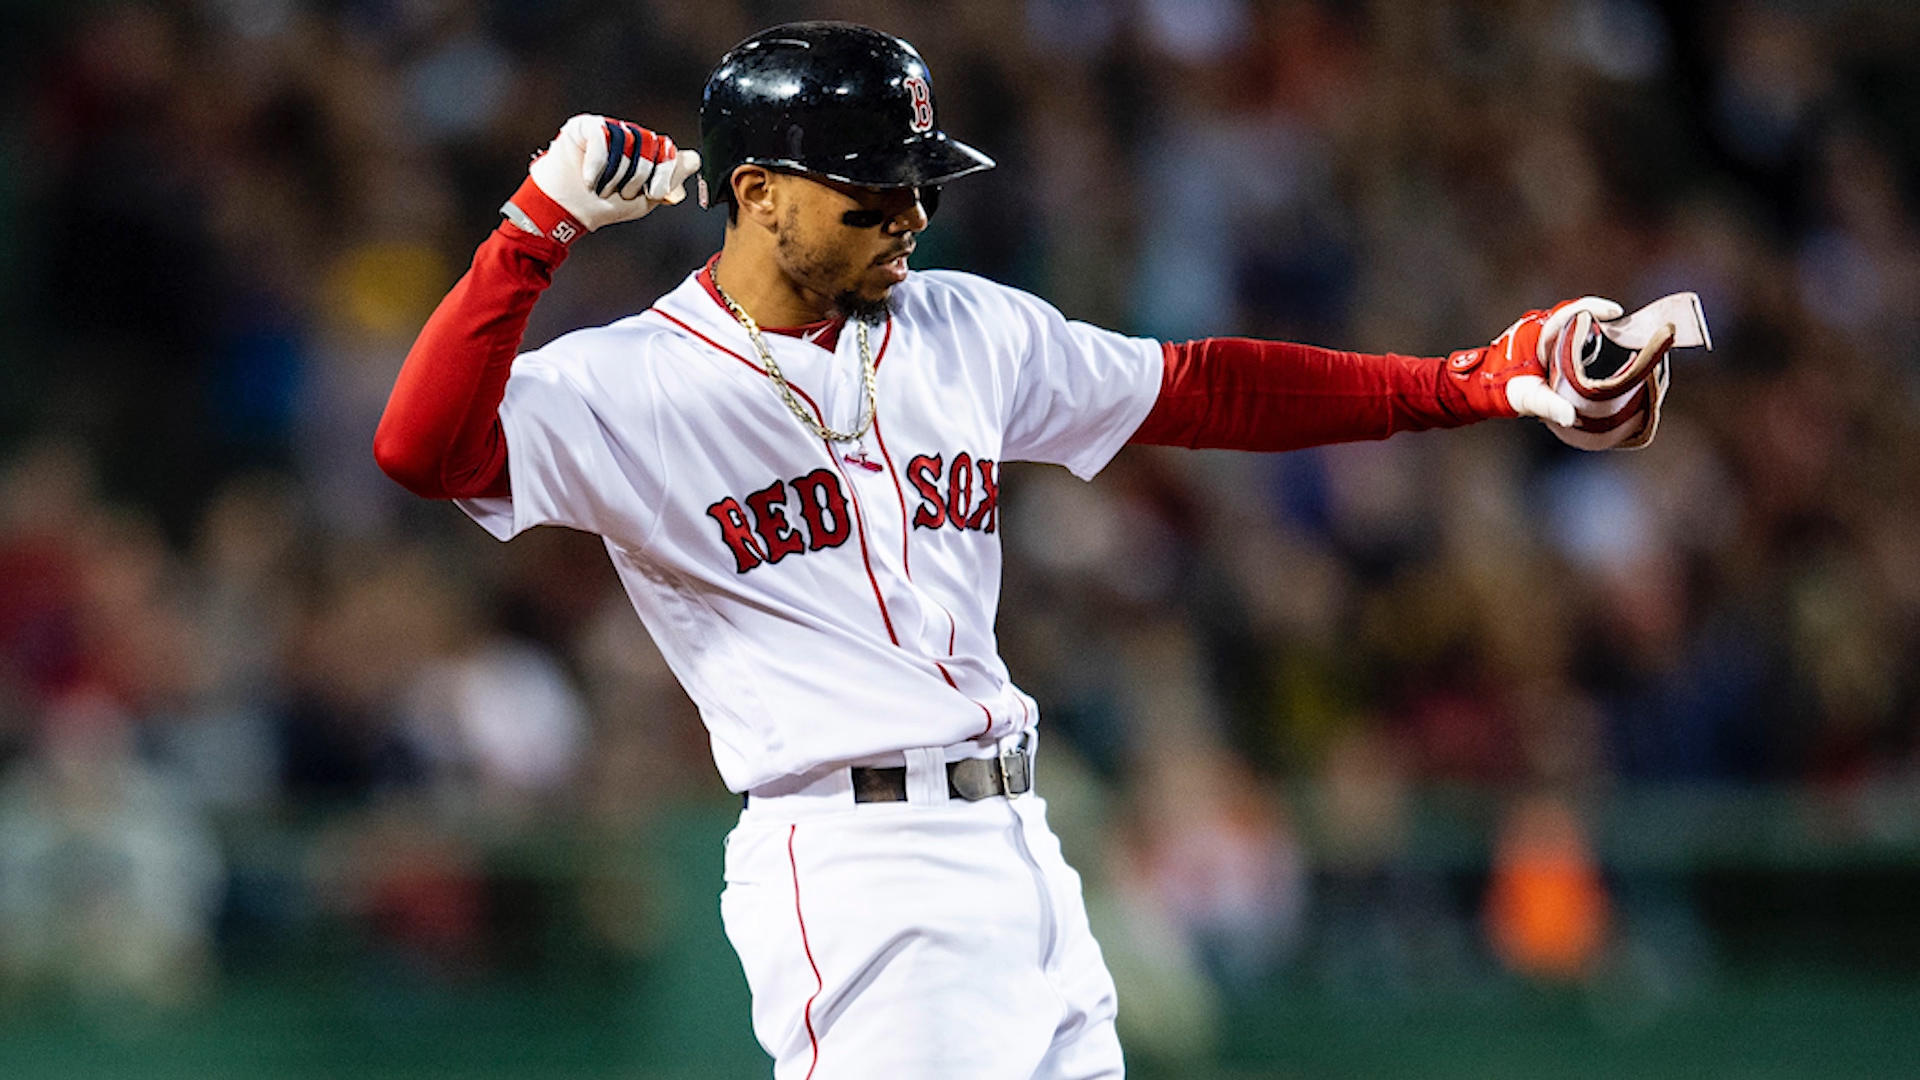 Fantasy Baseball Rankings 2019: Sleepers from model that predicted Scooter Gennett's strong season